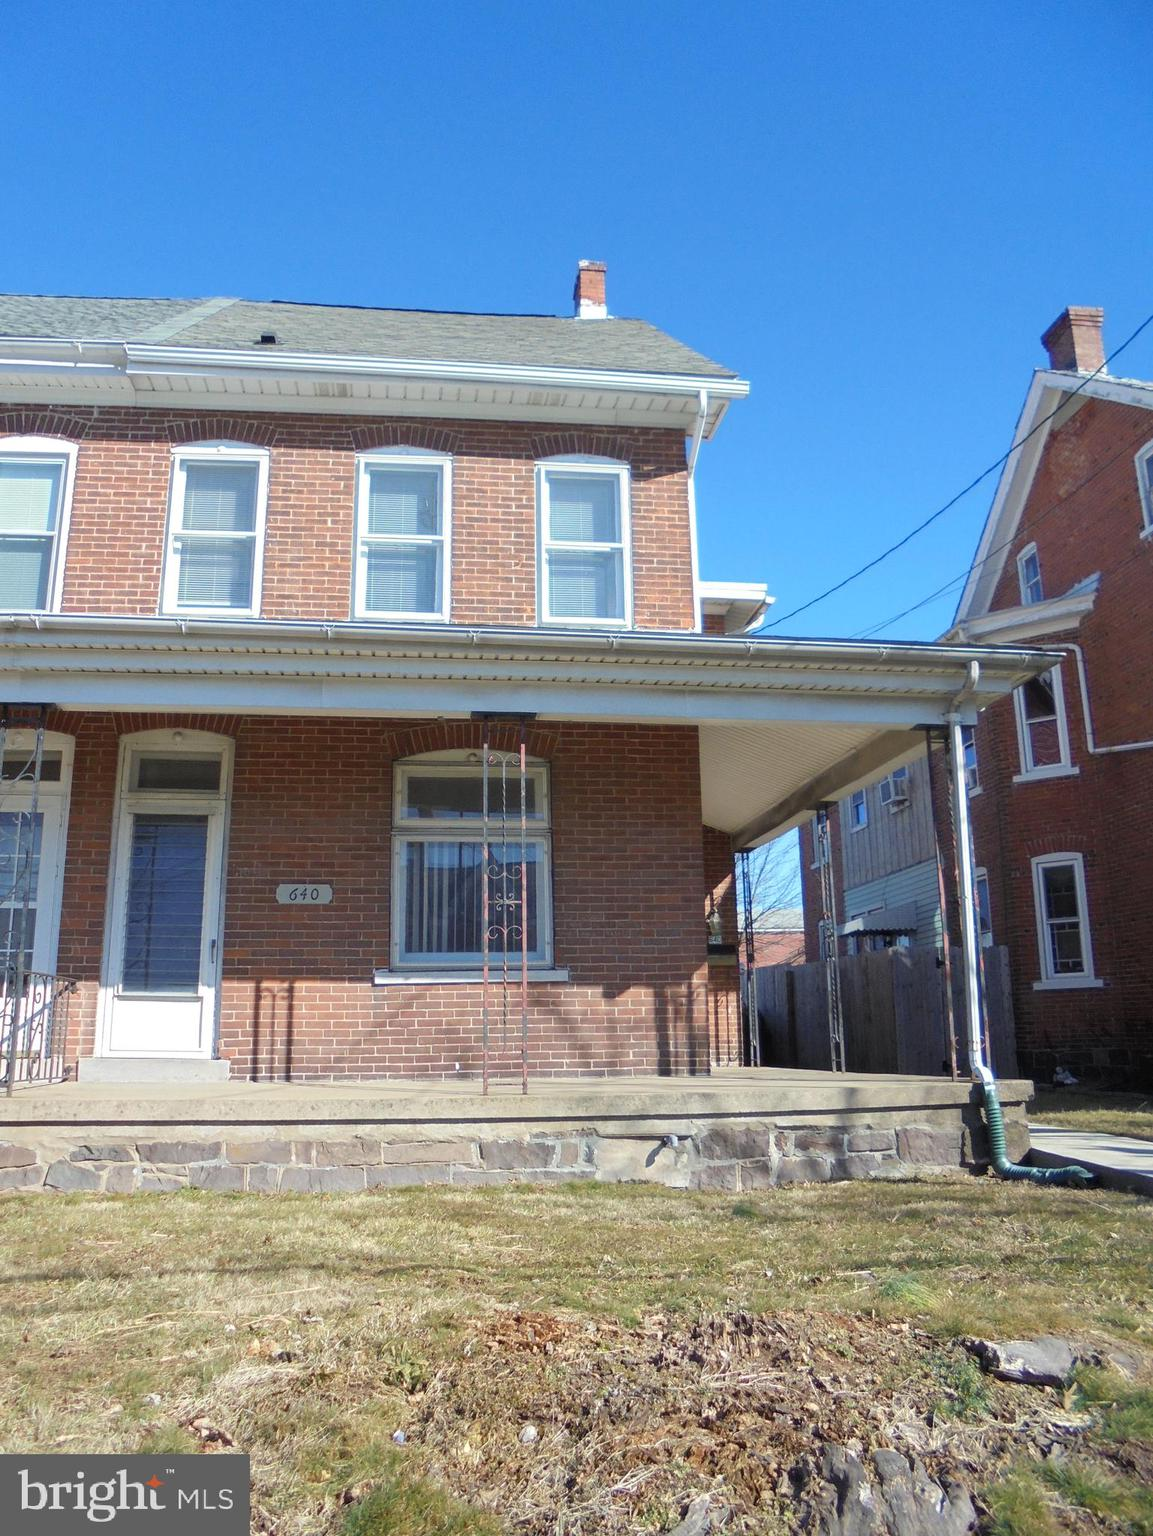 640 MAIN STREET, RED HILL, PA 18076